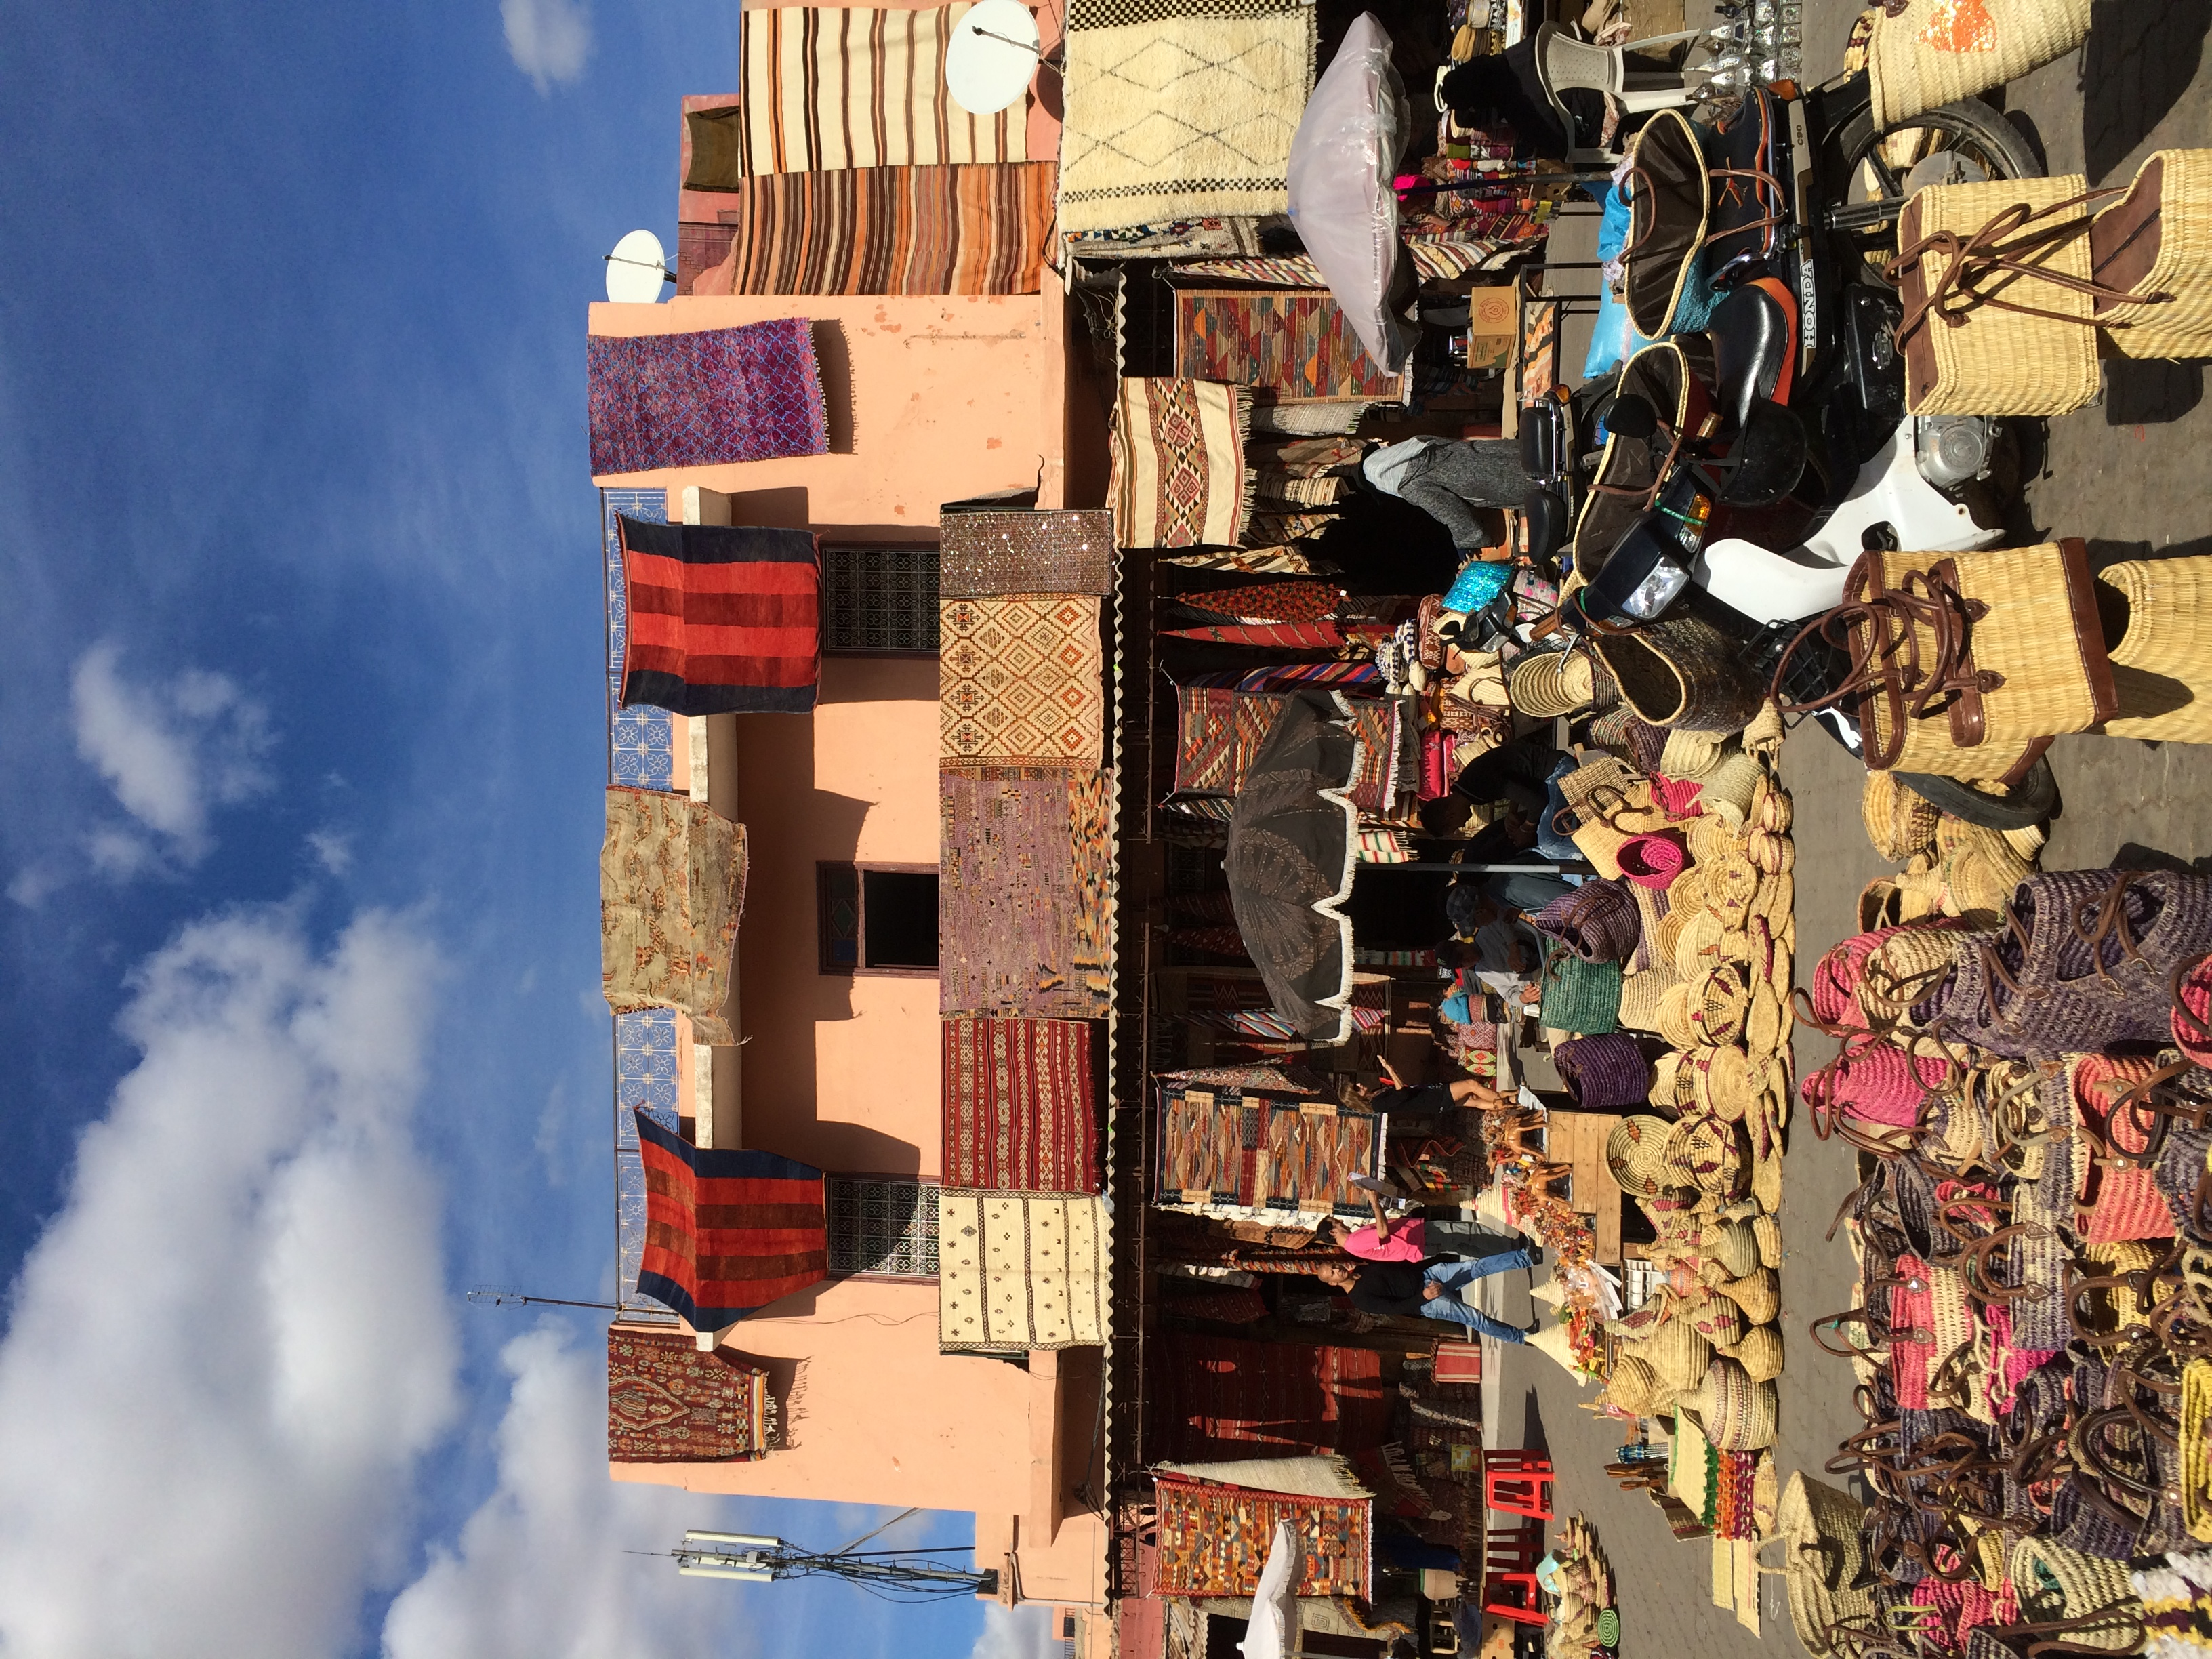 A small square in the Medina of Marrakech